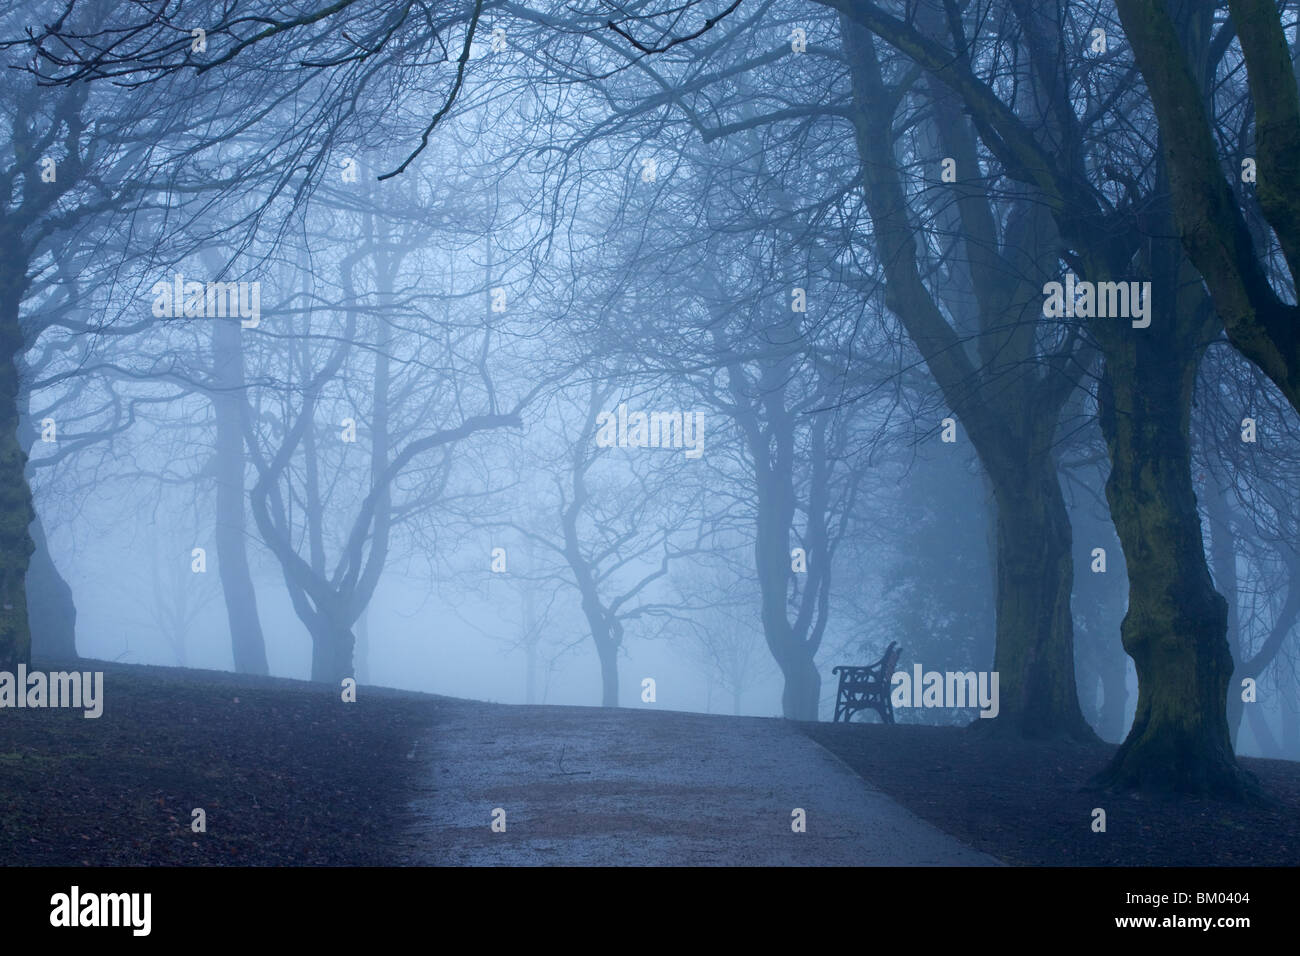 A lone park bench on a foggy day in the park - Stock Image